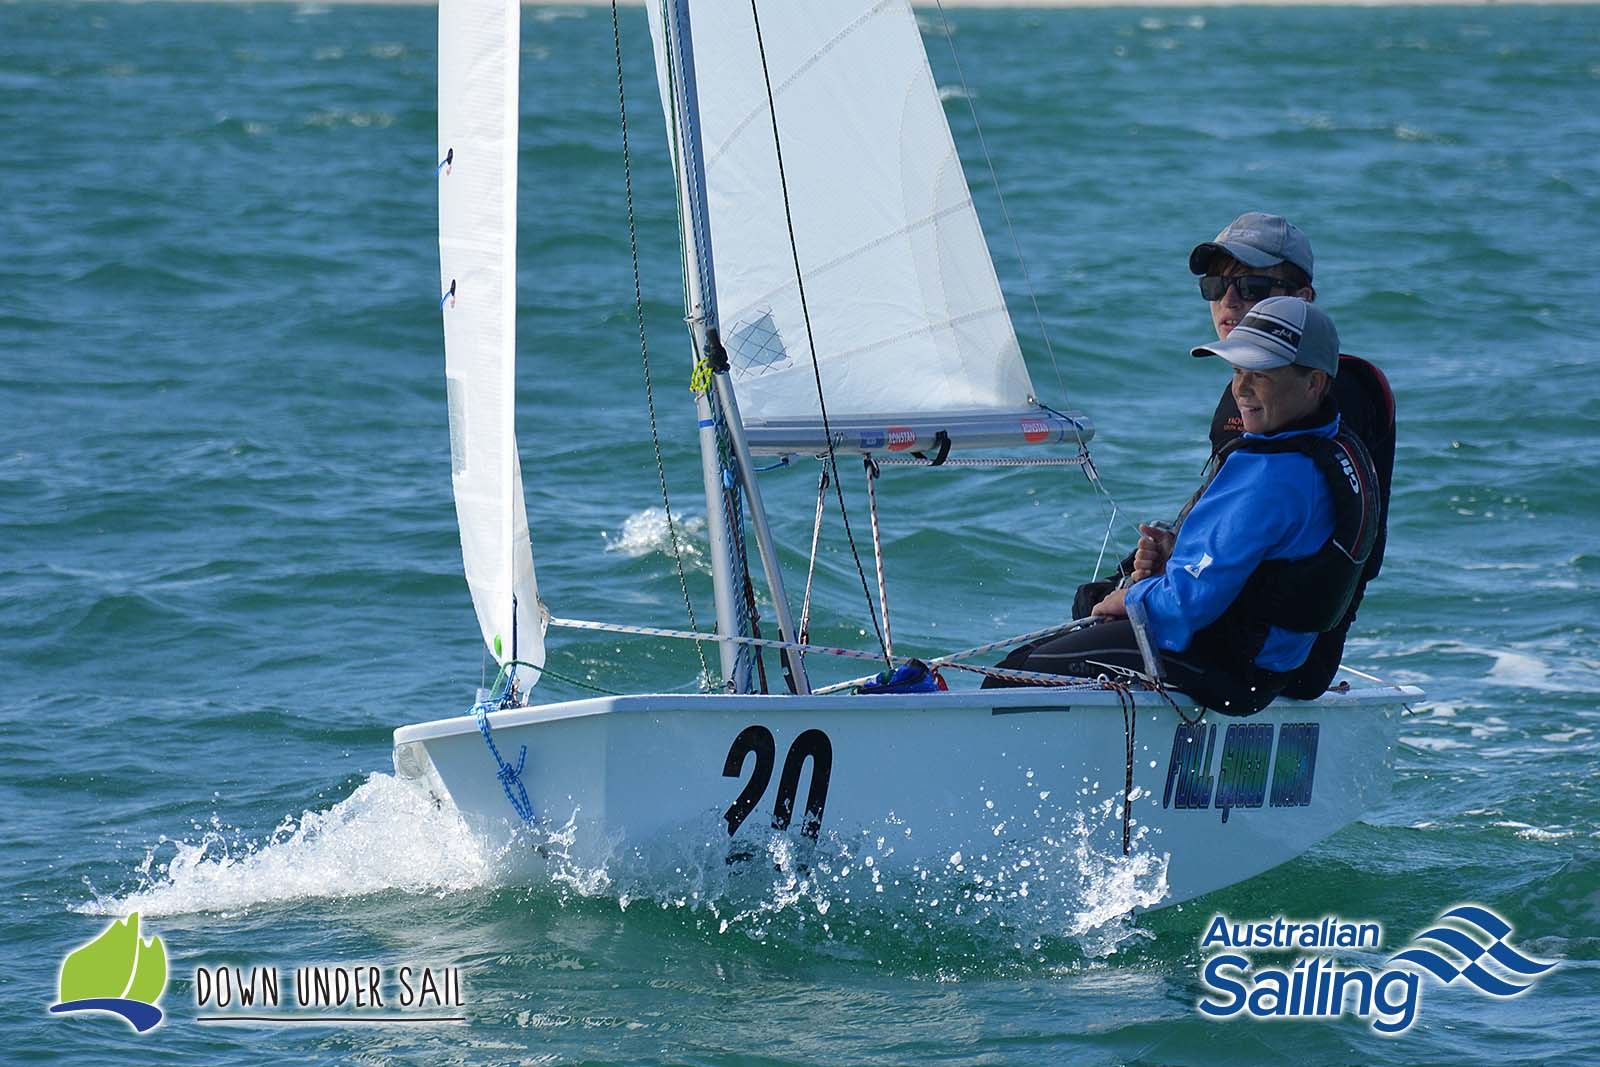 Sam Paynter and Gil Casanova in Full Speed Ahead were the International Cadet winners at last year's SA Youths.